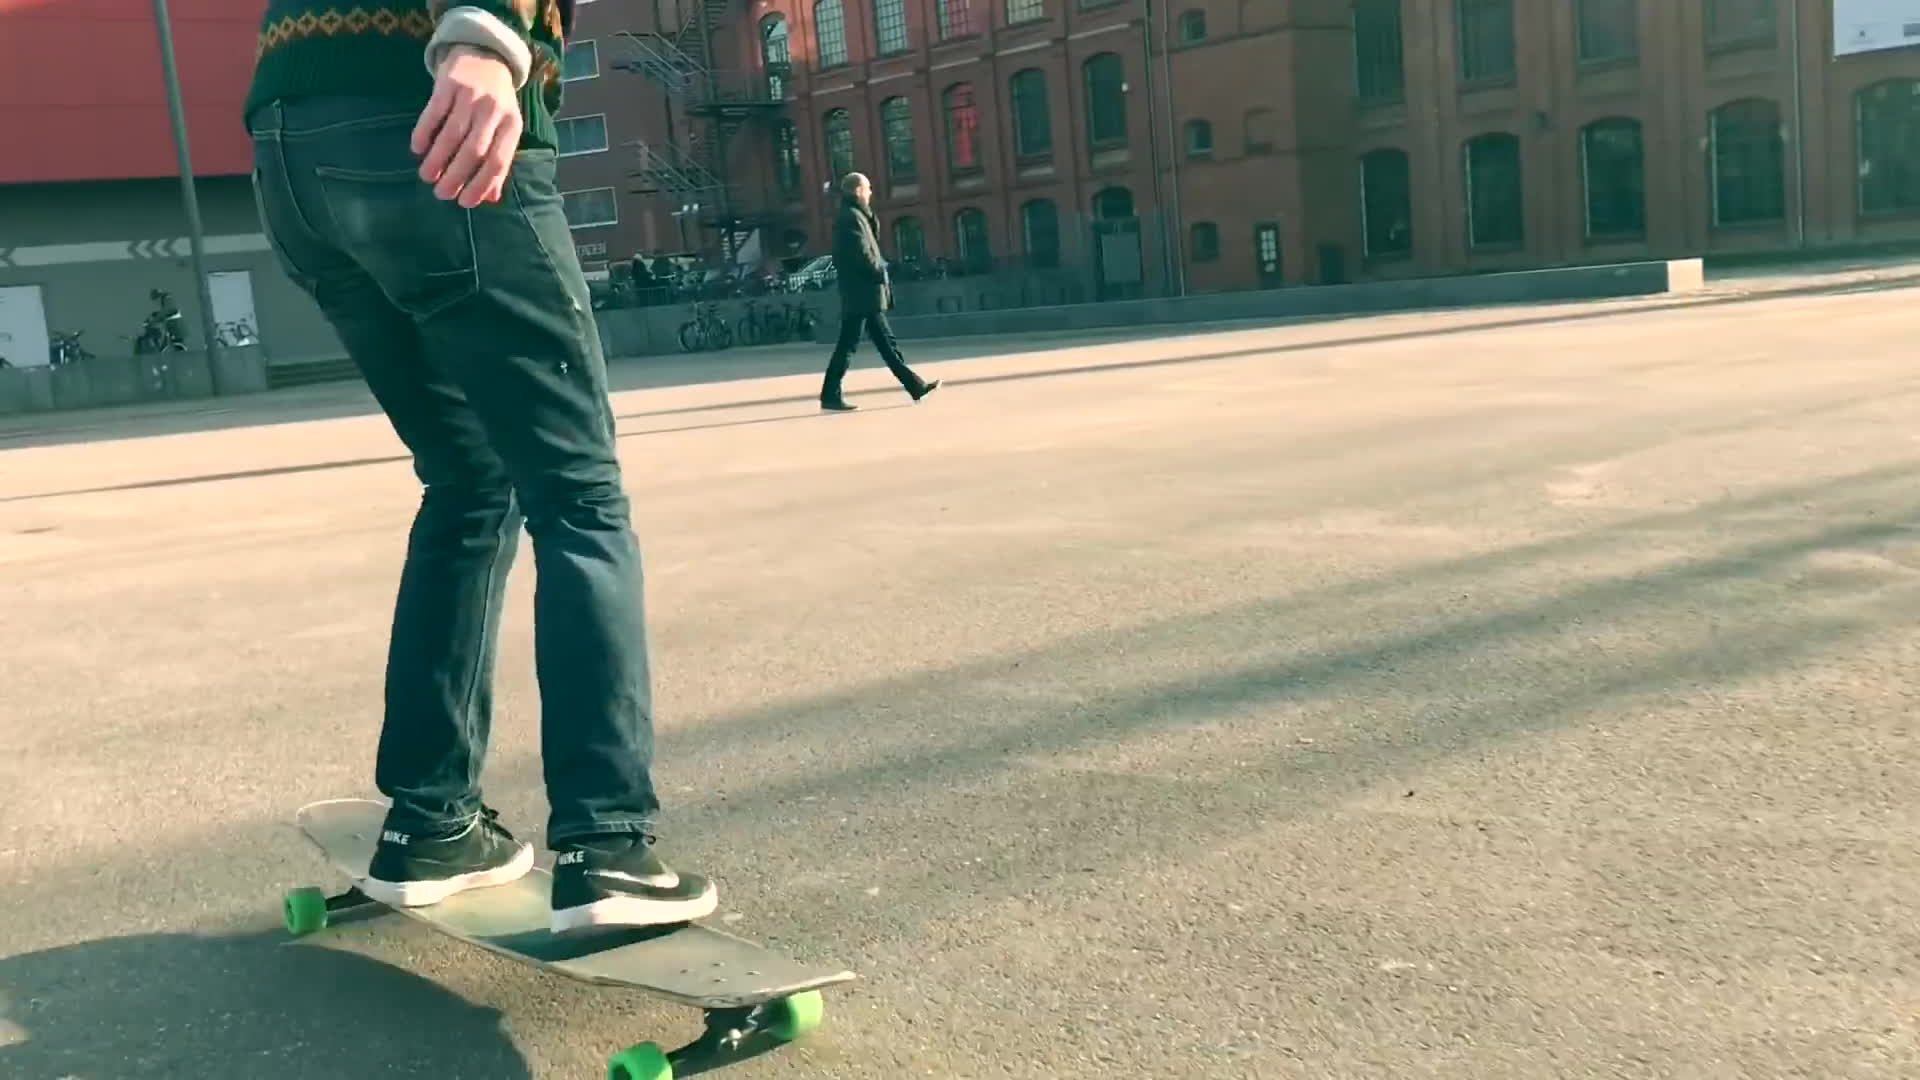 longboarding, Longboard Dance Video - First Sunny Days 2017 GIFs